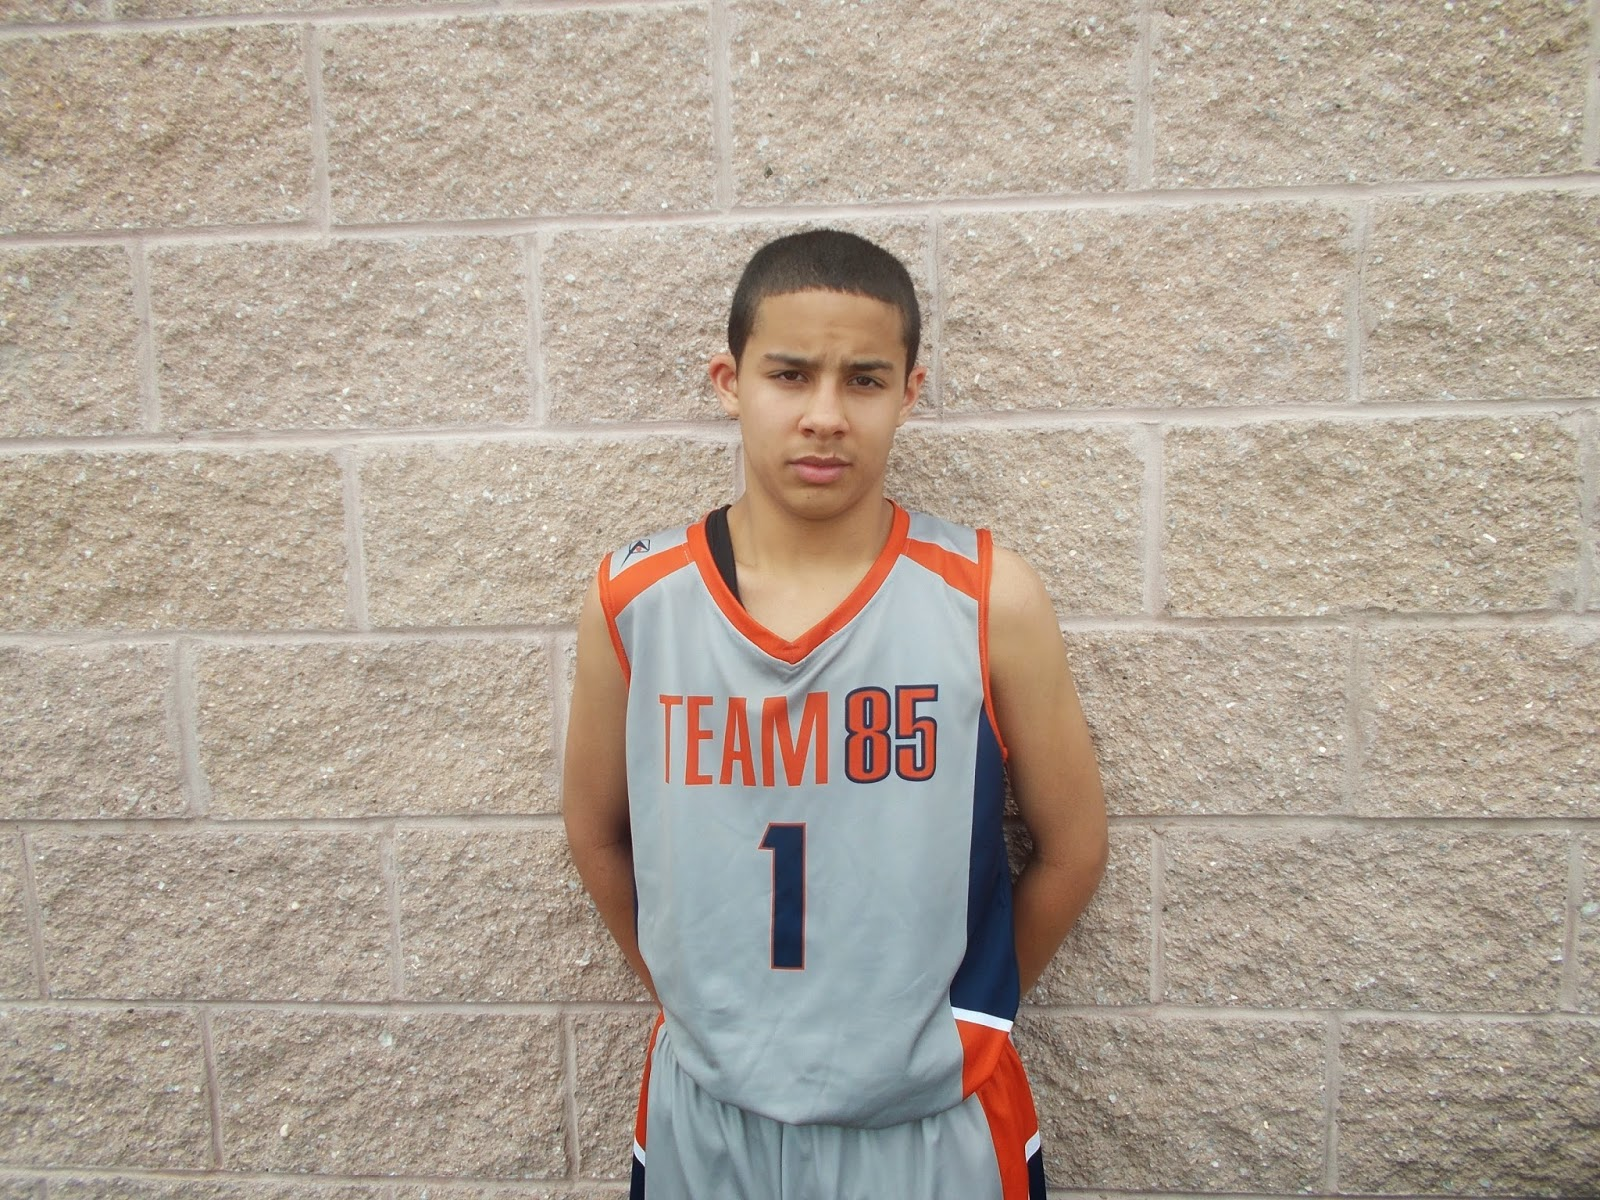 a9ba70f33fa5 Ja-el Vega Guard (Team 85)- Vega has guard skills but with his size he also  does a lot of work inside. Before you think he s playing out of position  that s ...